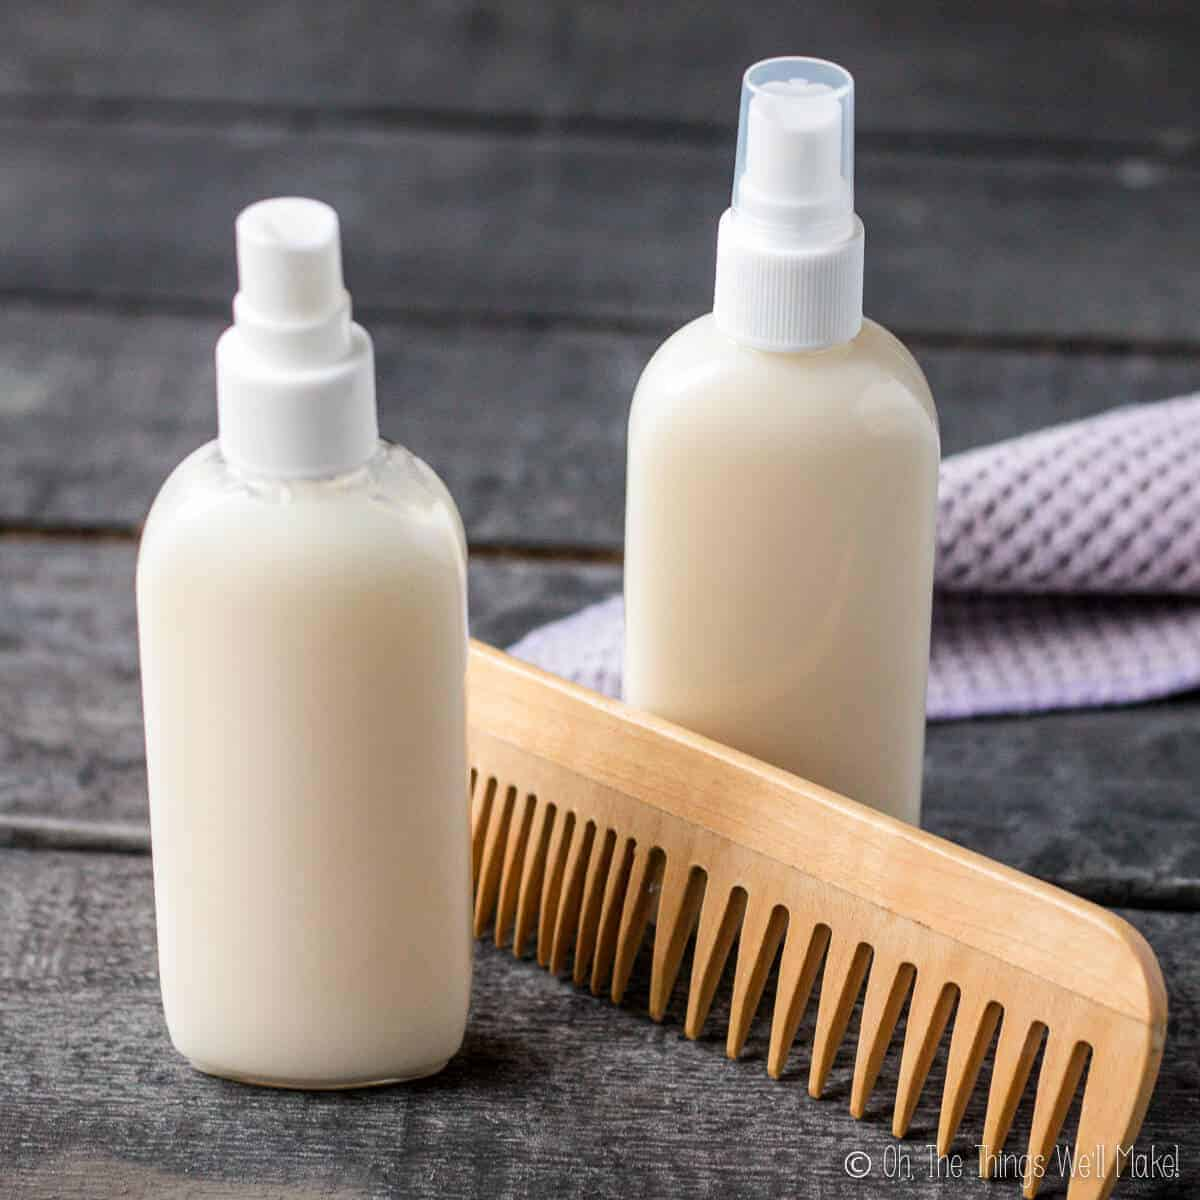 Two bottles of a homemade conditioner next to a wooden comb and a washcloth.